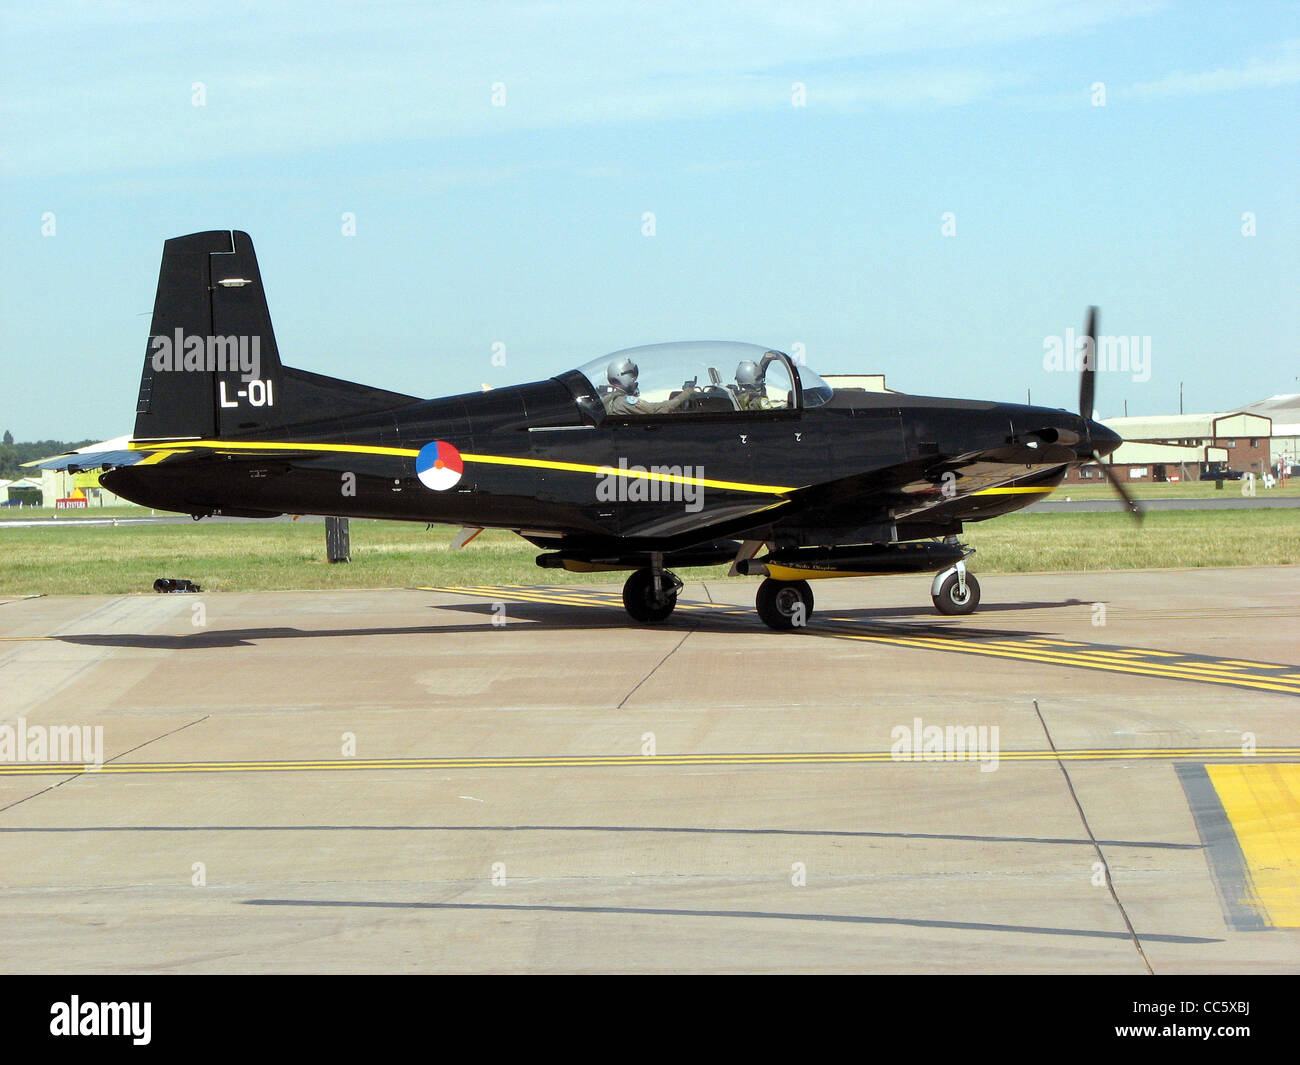 Pilatus PC-7 Turbotrainer of the Royal Netherlands Air Force (identifier L-01) taxis for takeoff at the Royal International - Stock Image